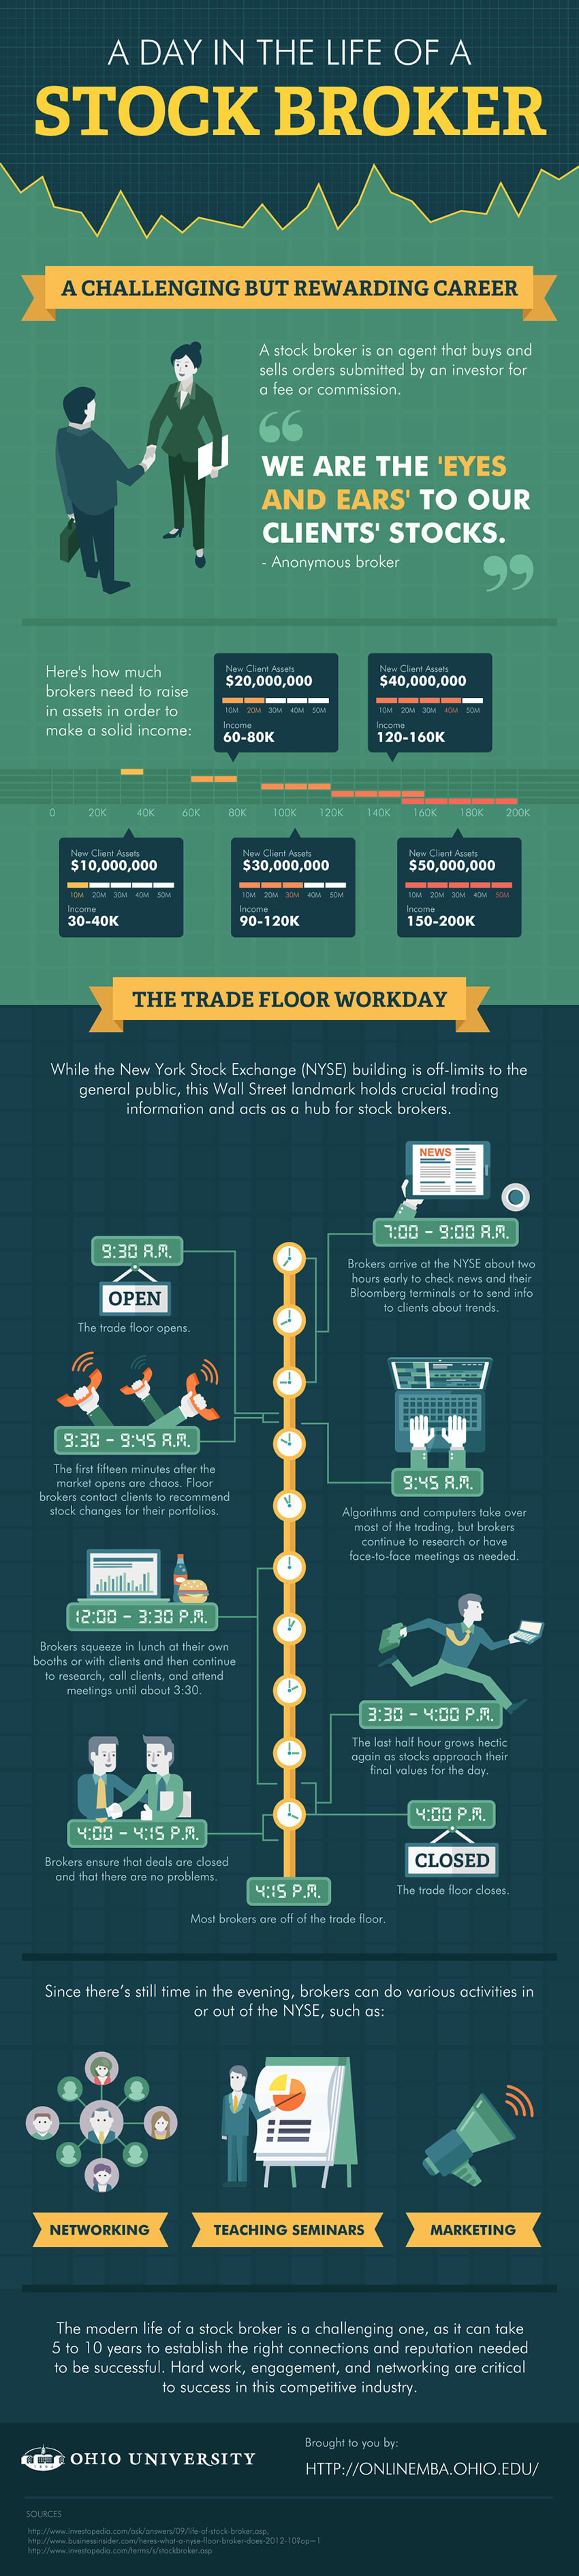 A Day in the Life of a Stock Broker infographic